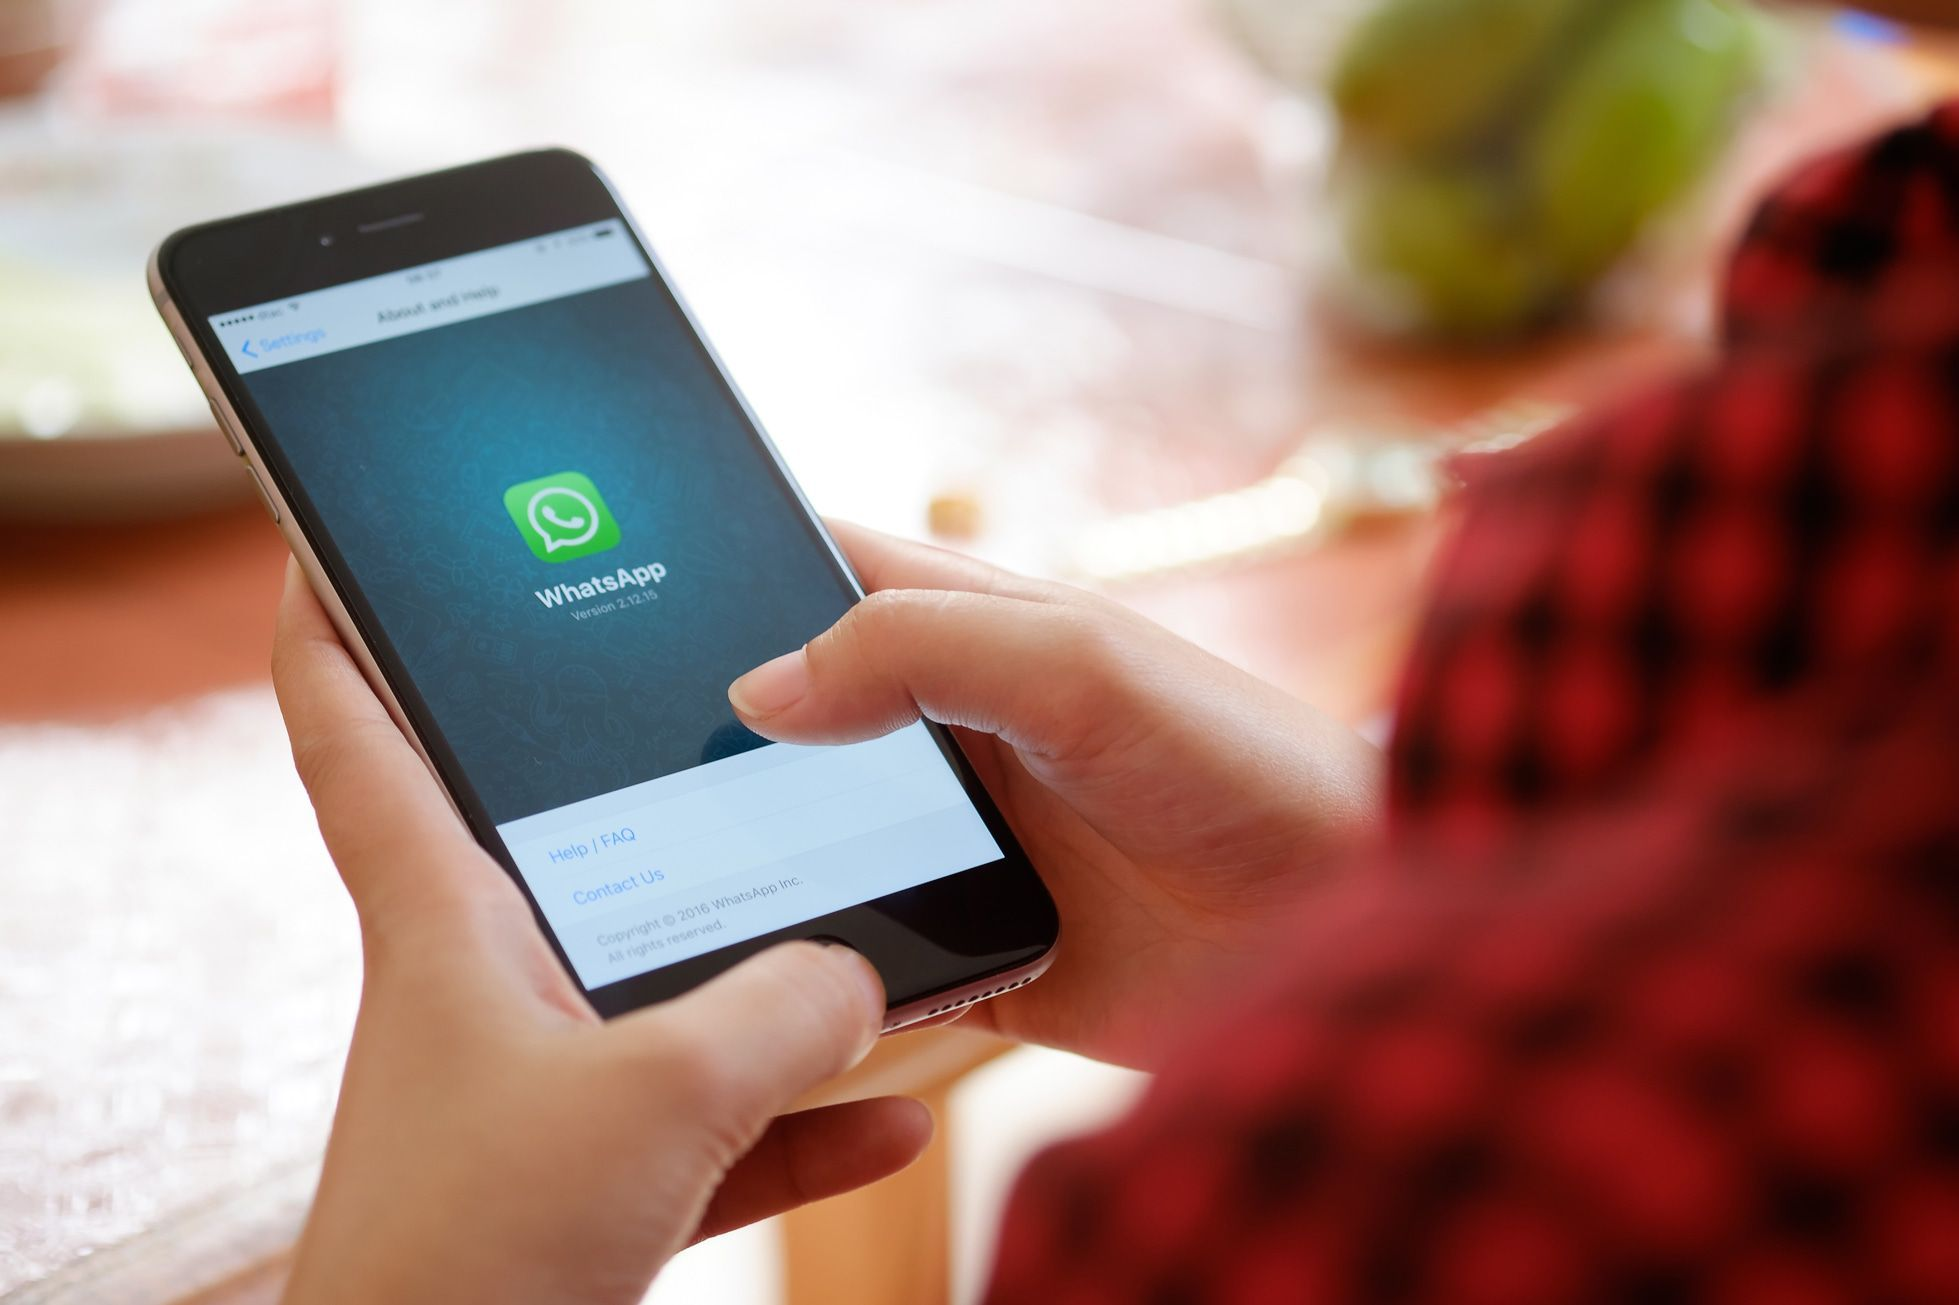 WhatsApp Brings Multi-Share Preview to Android #mobile